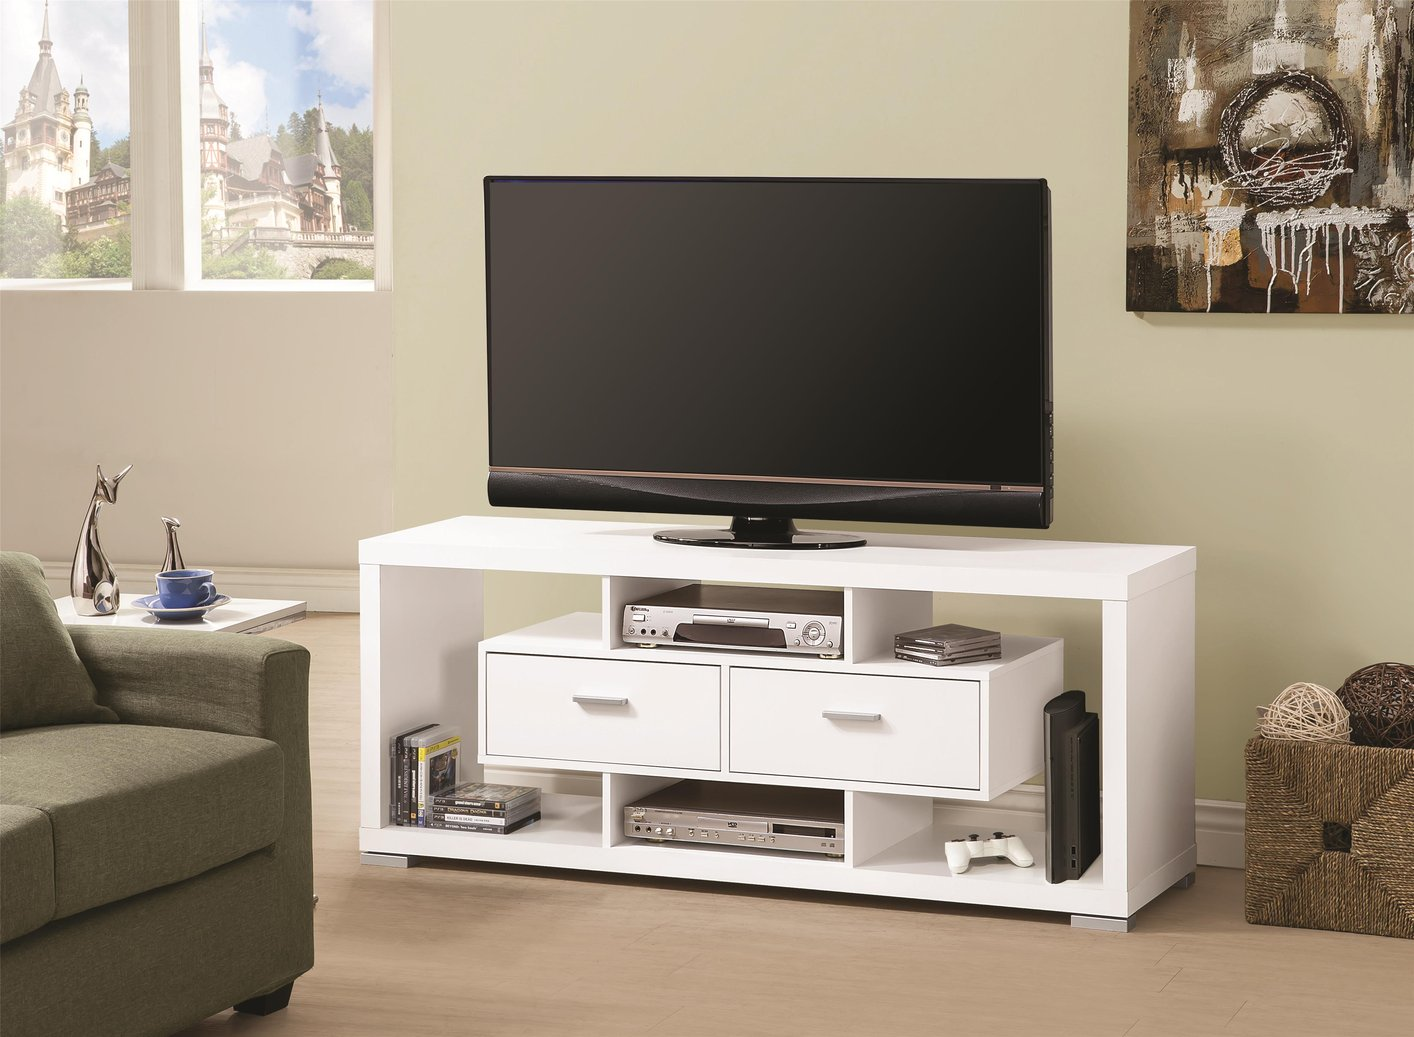 Decorate A Room Online Free White Wood Tv Stand Steal A Sofa Furniture Outlet Los